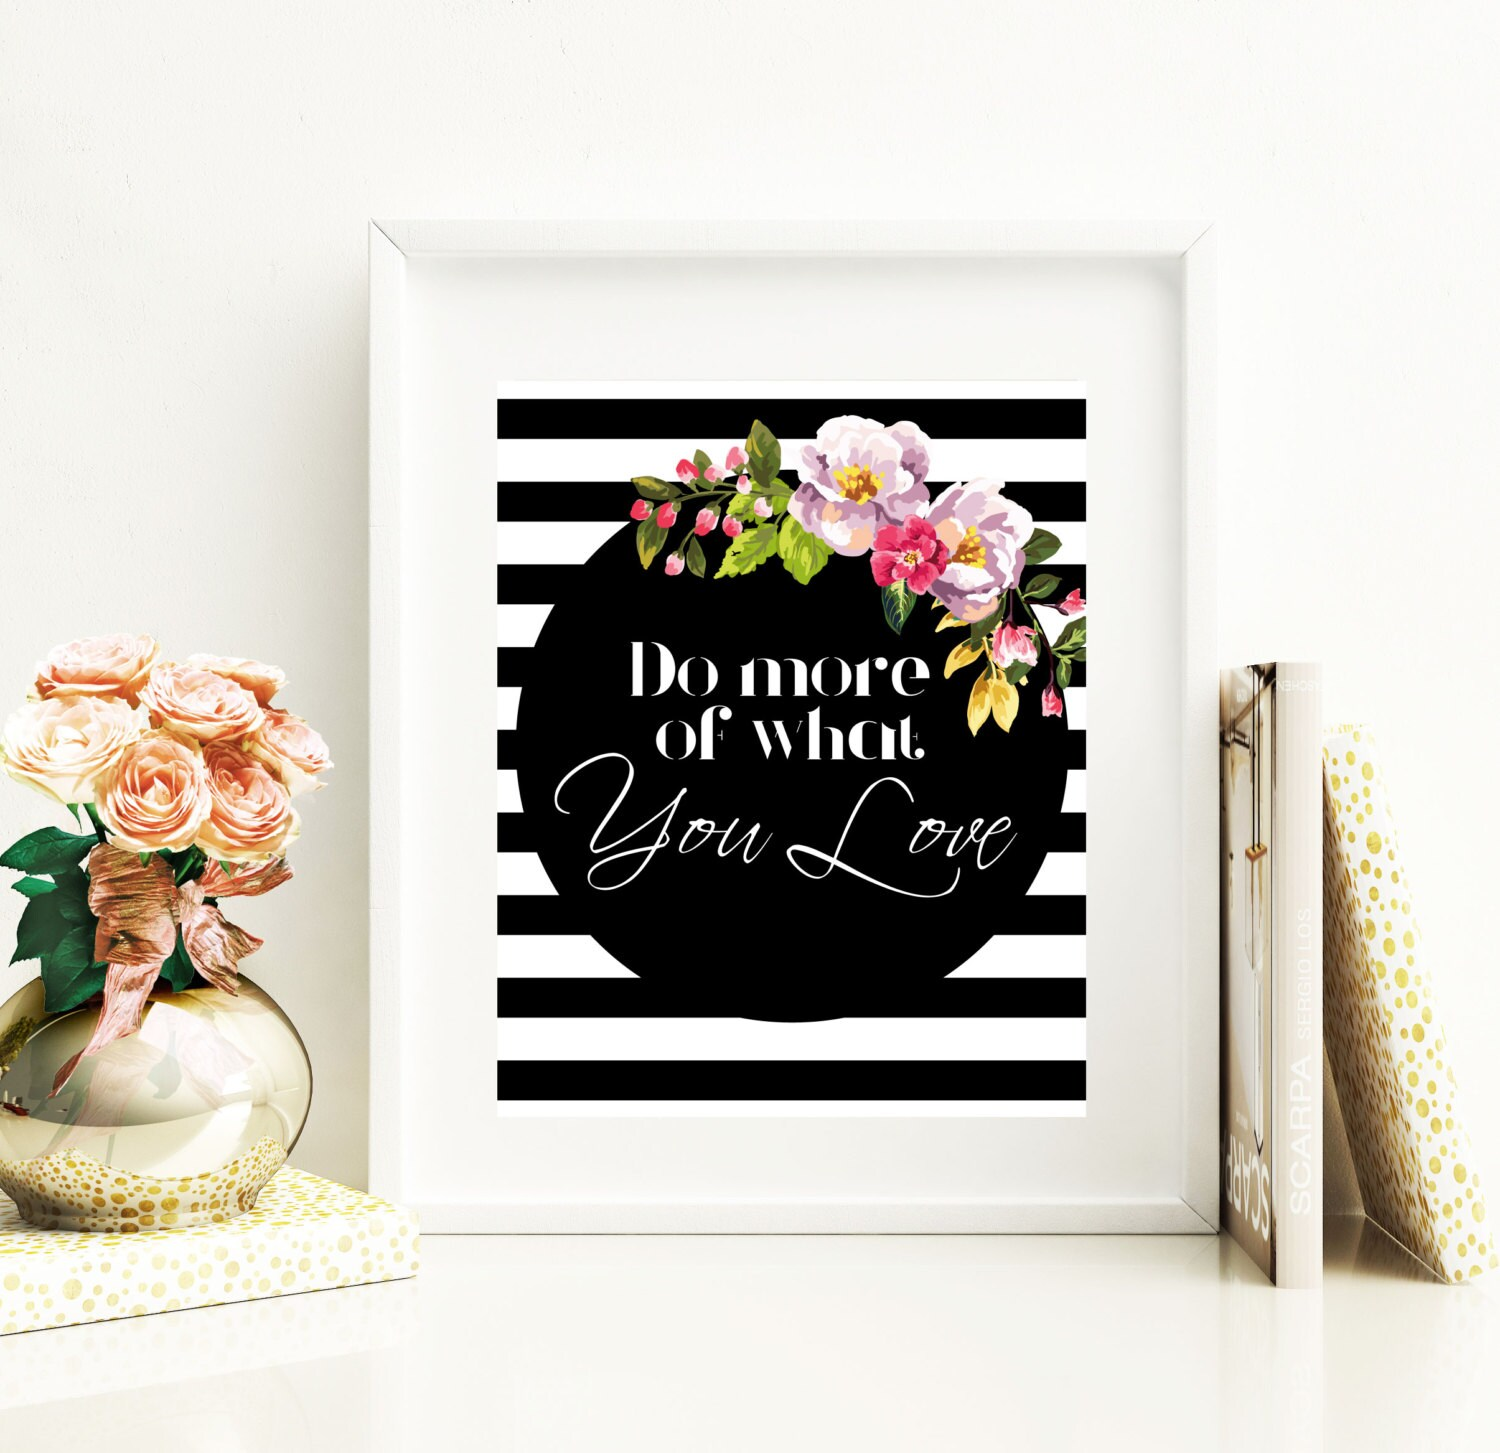 Christmas Gift For College Student: Christmas Gift Cubicle Decor Motivational Print High